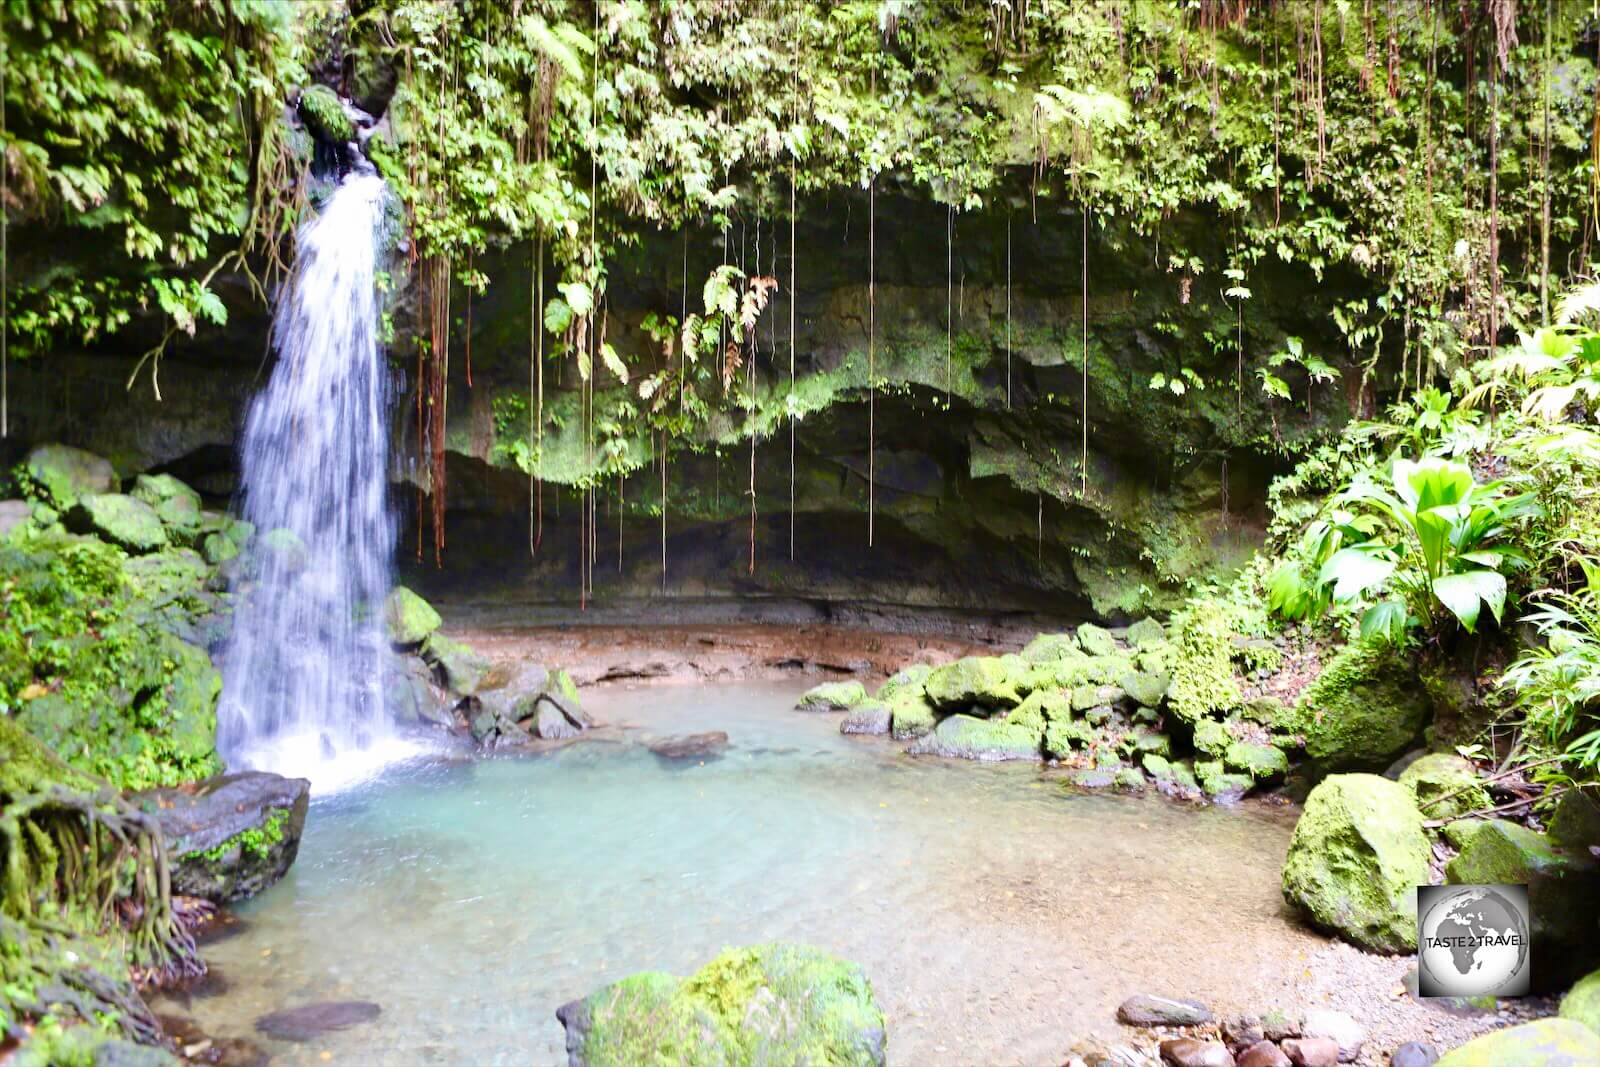 The Emerald pool is a relaxed natural pool with a rocky ledge and a small waterfall in the middle of a serene rainforest.